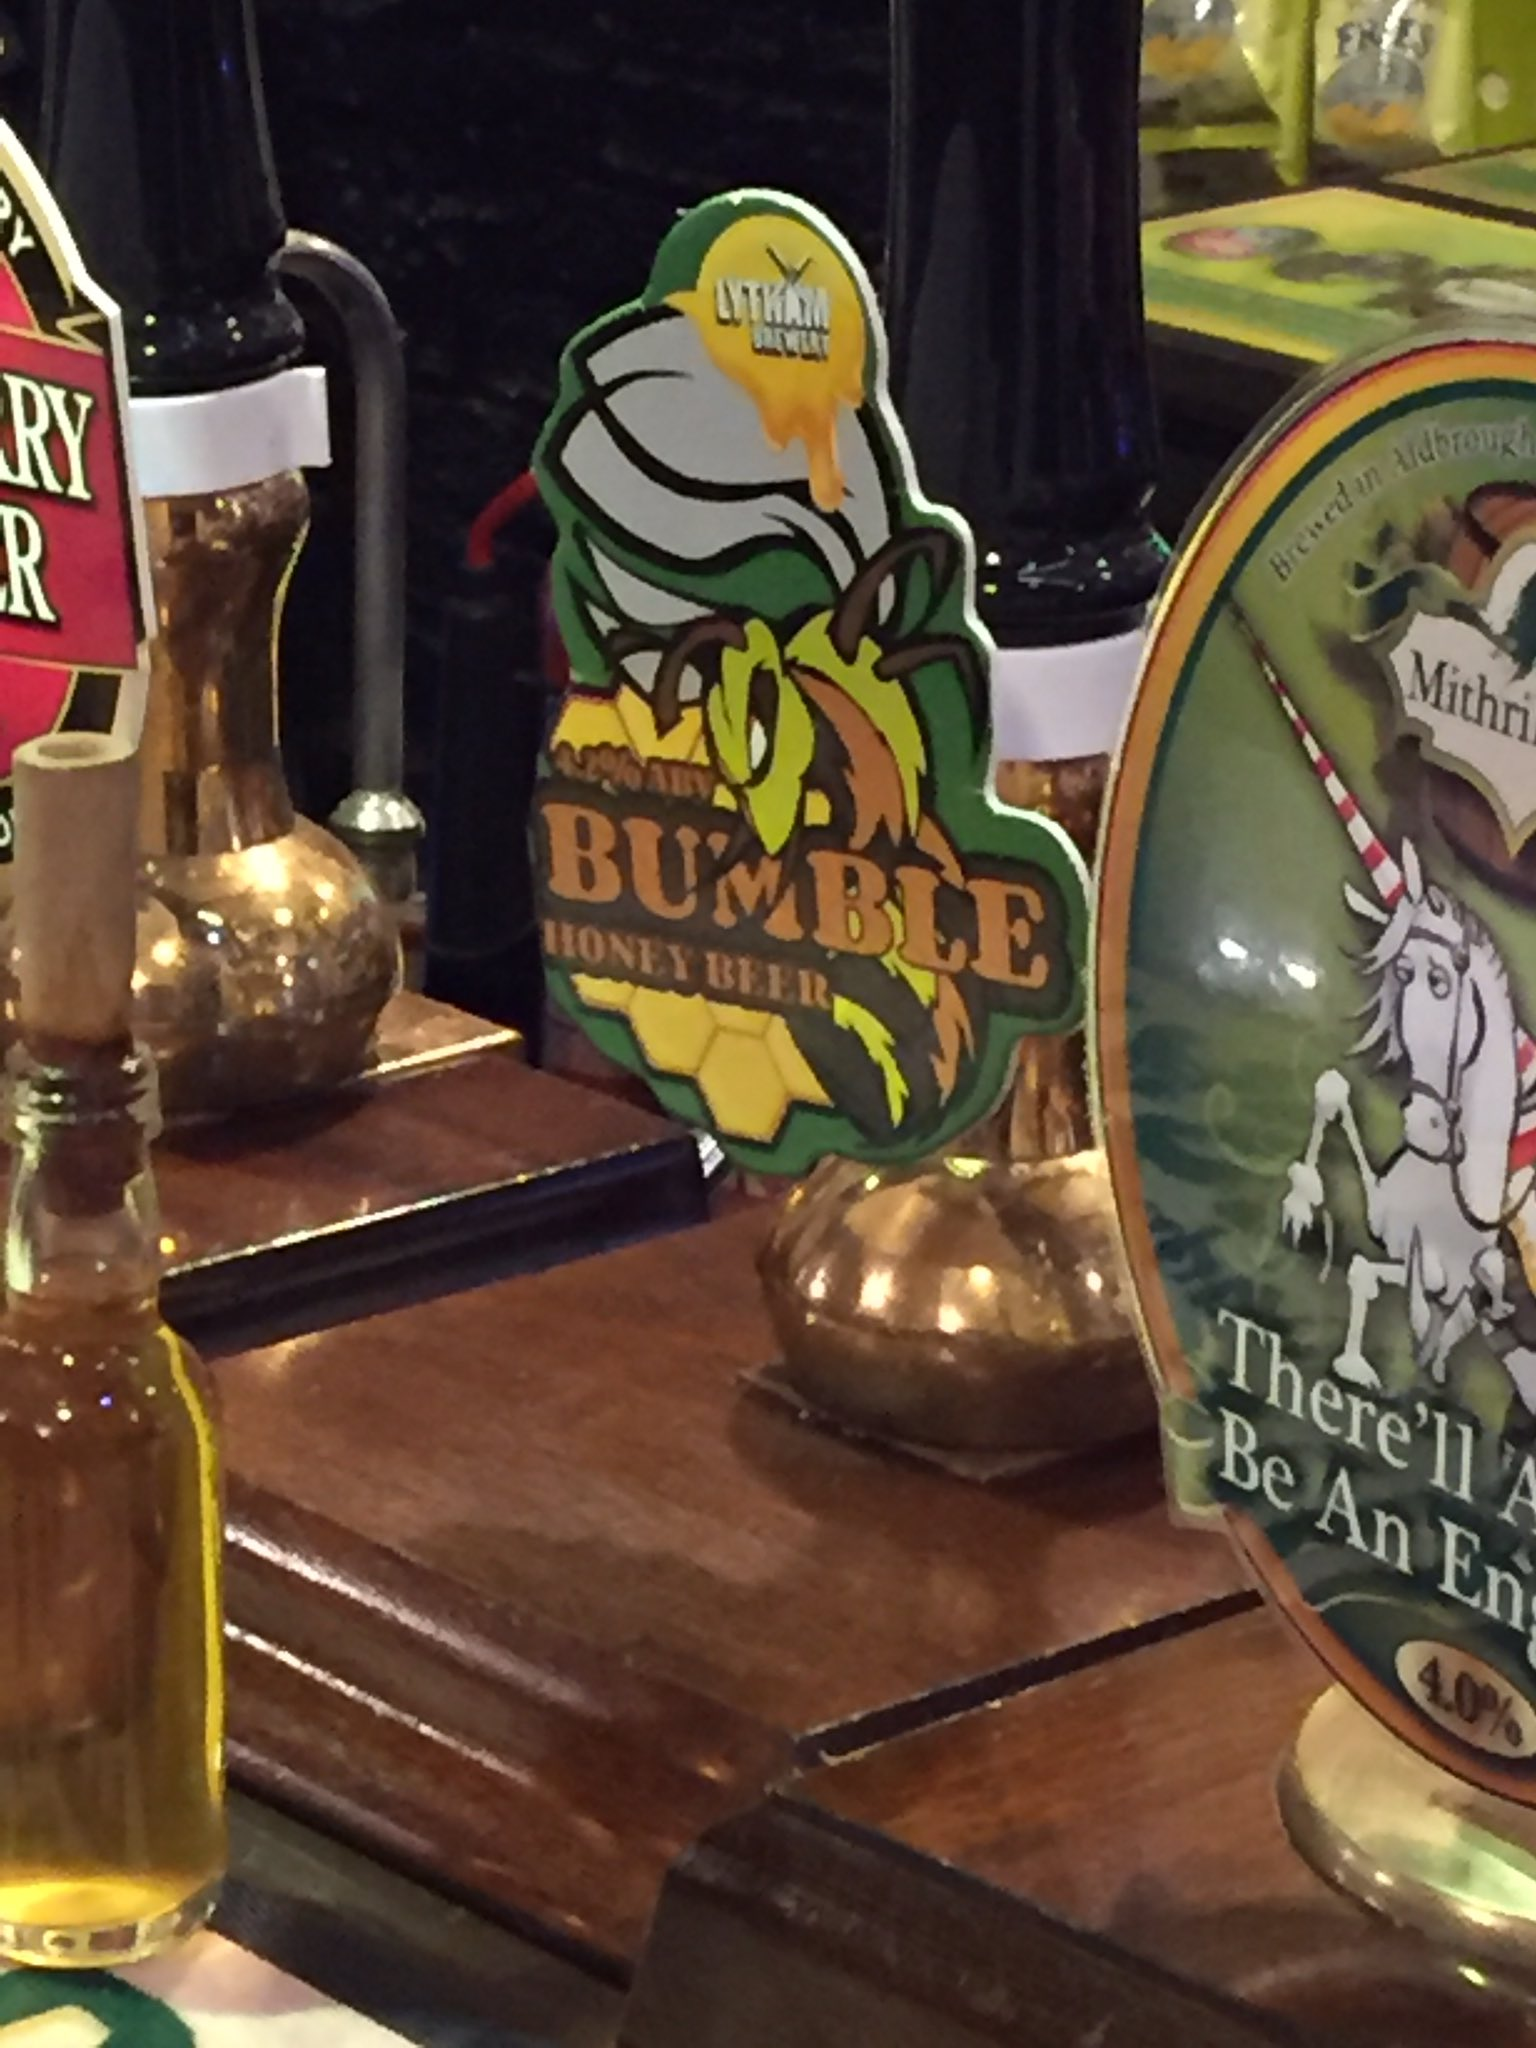 Recommended: Bumble honey beer in @TheQuakerhouse - goes down a treat. https://t.co/Arl8PfO6Vd